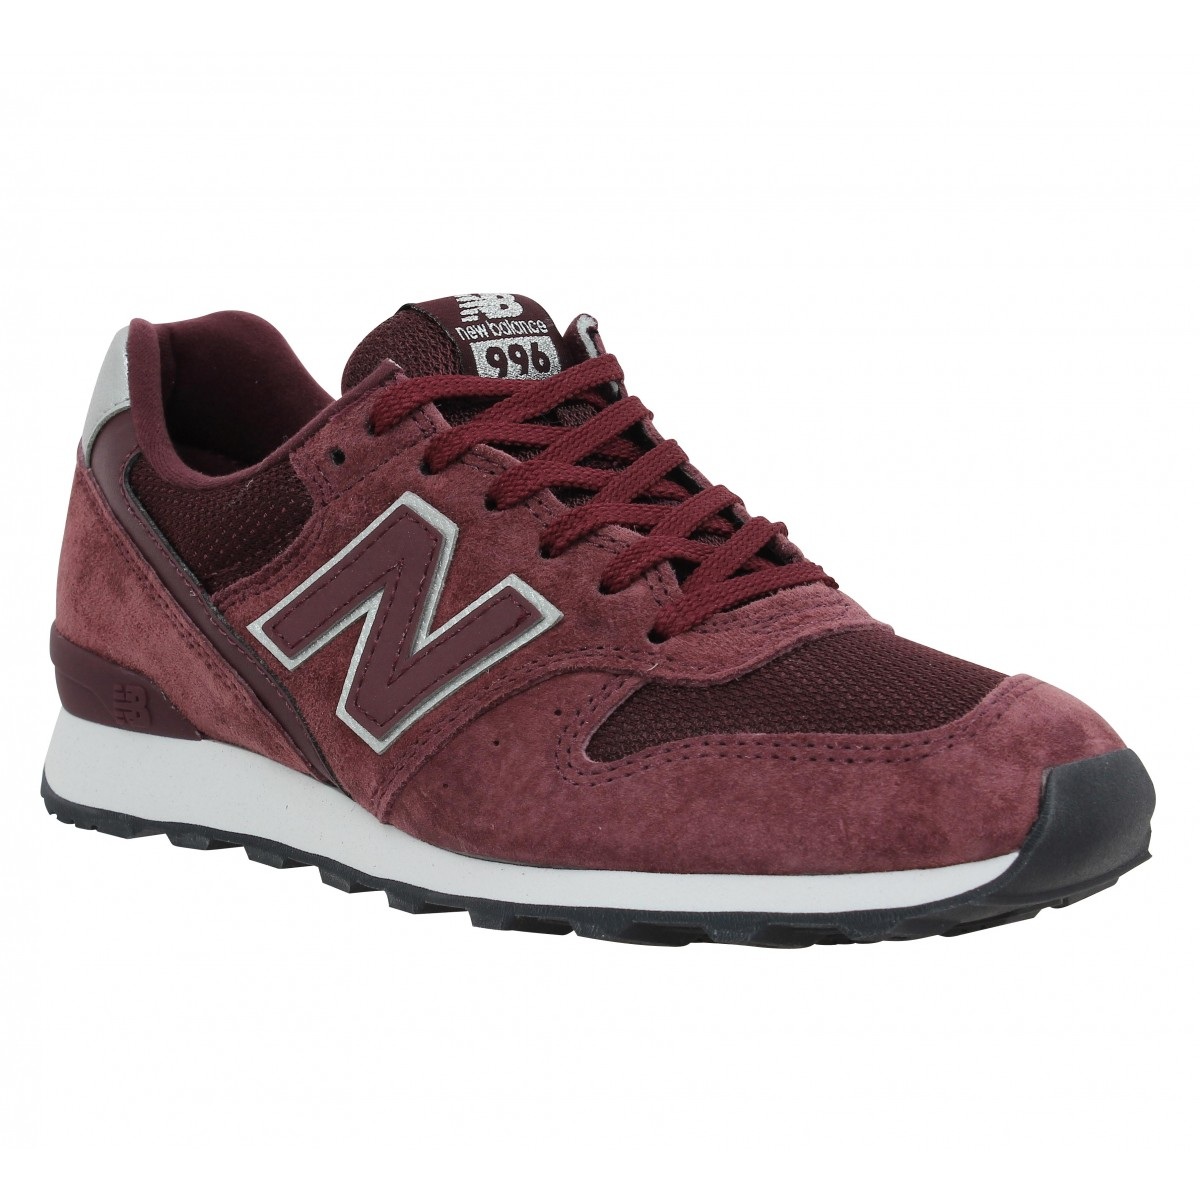 Baskets NEW BALANCE 996 velours + toile Femme Bordeaux